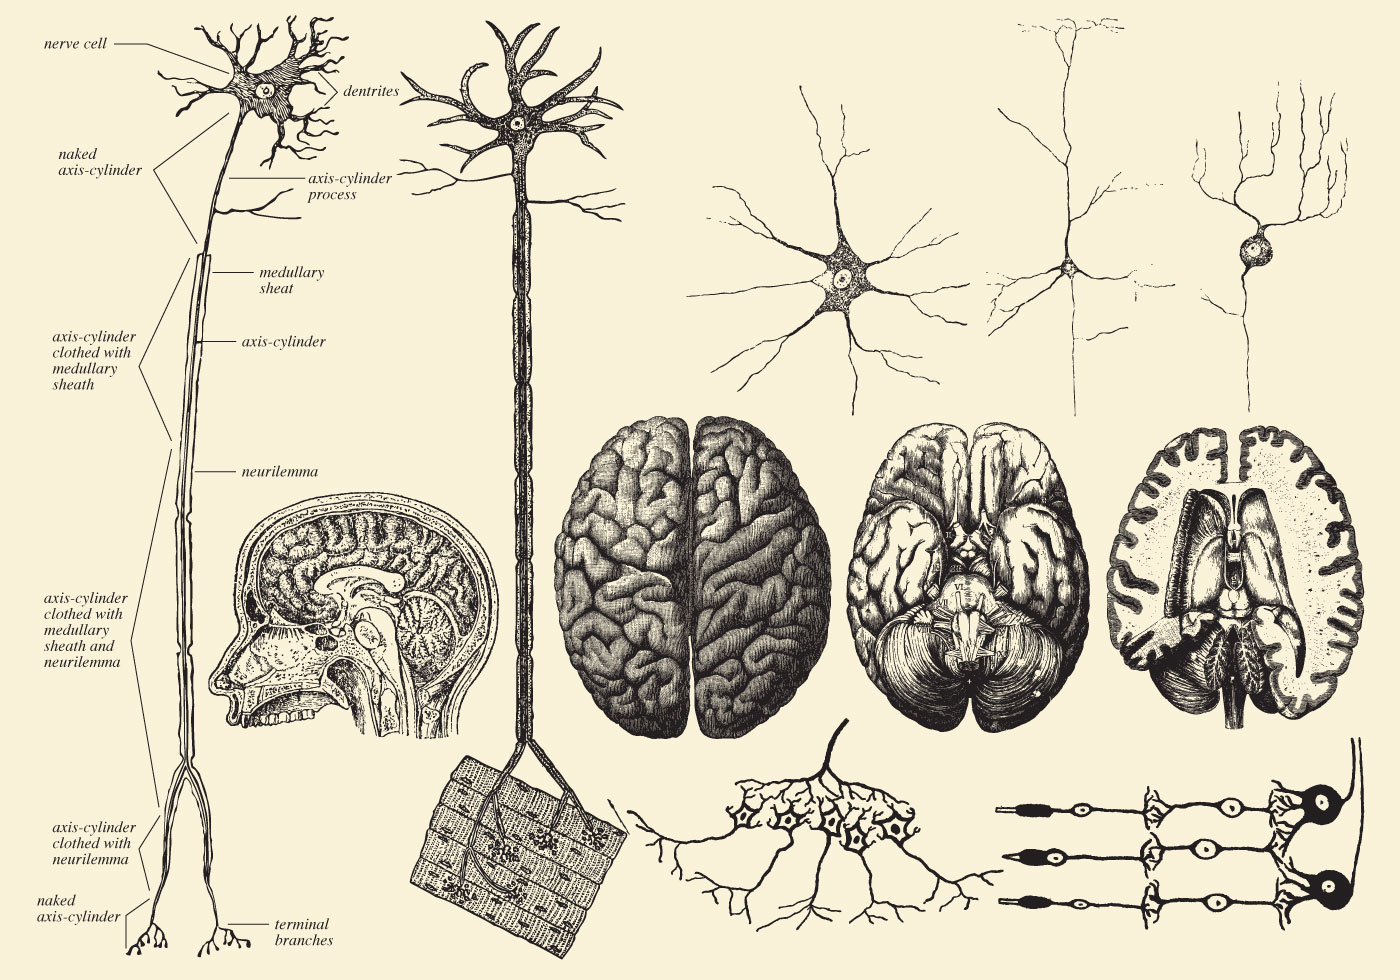 human brain cell diagram electric guitar wiring diagrams and neuron drawings download free vector art